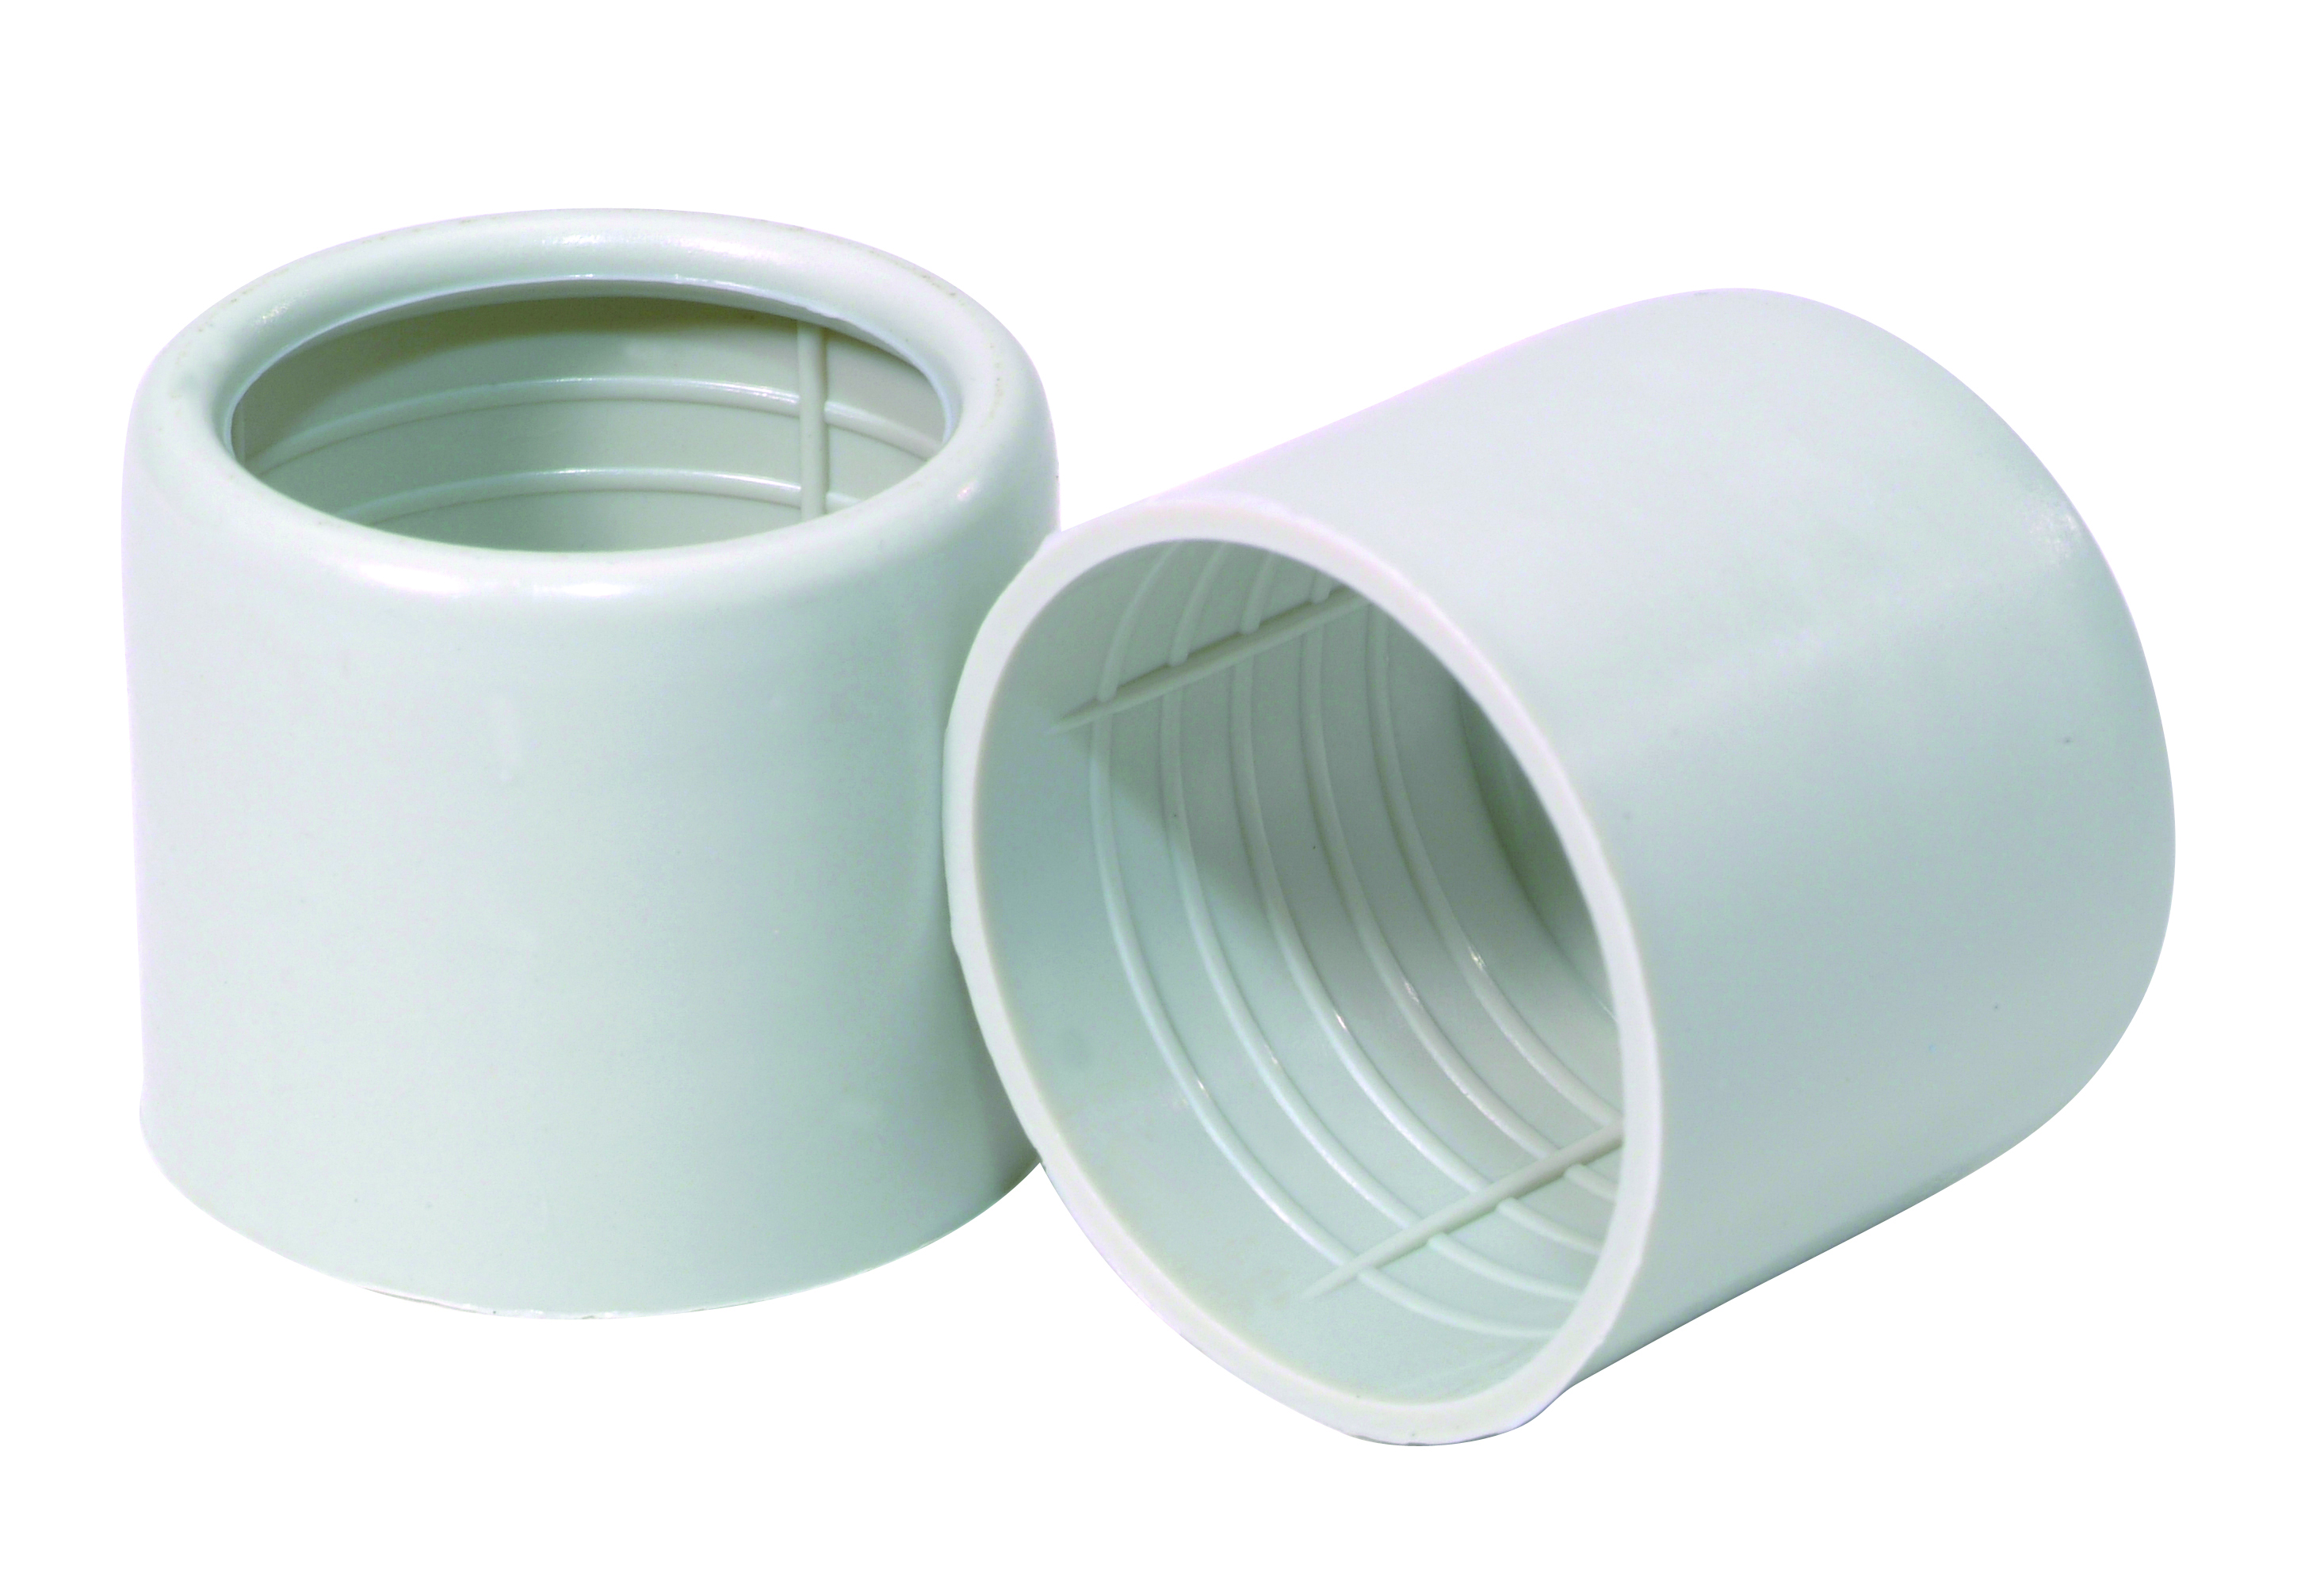 Entrance for PVC pipe 25mm 5 pieces